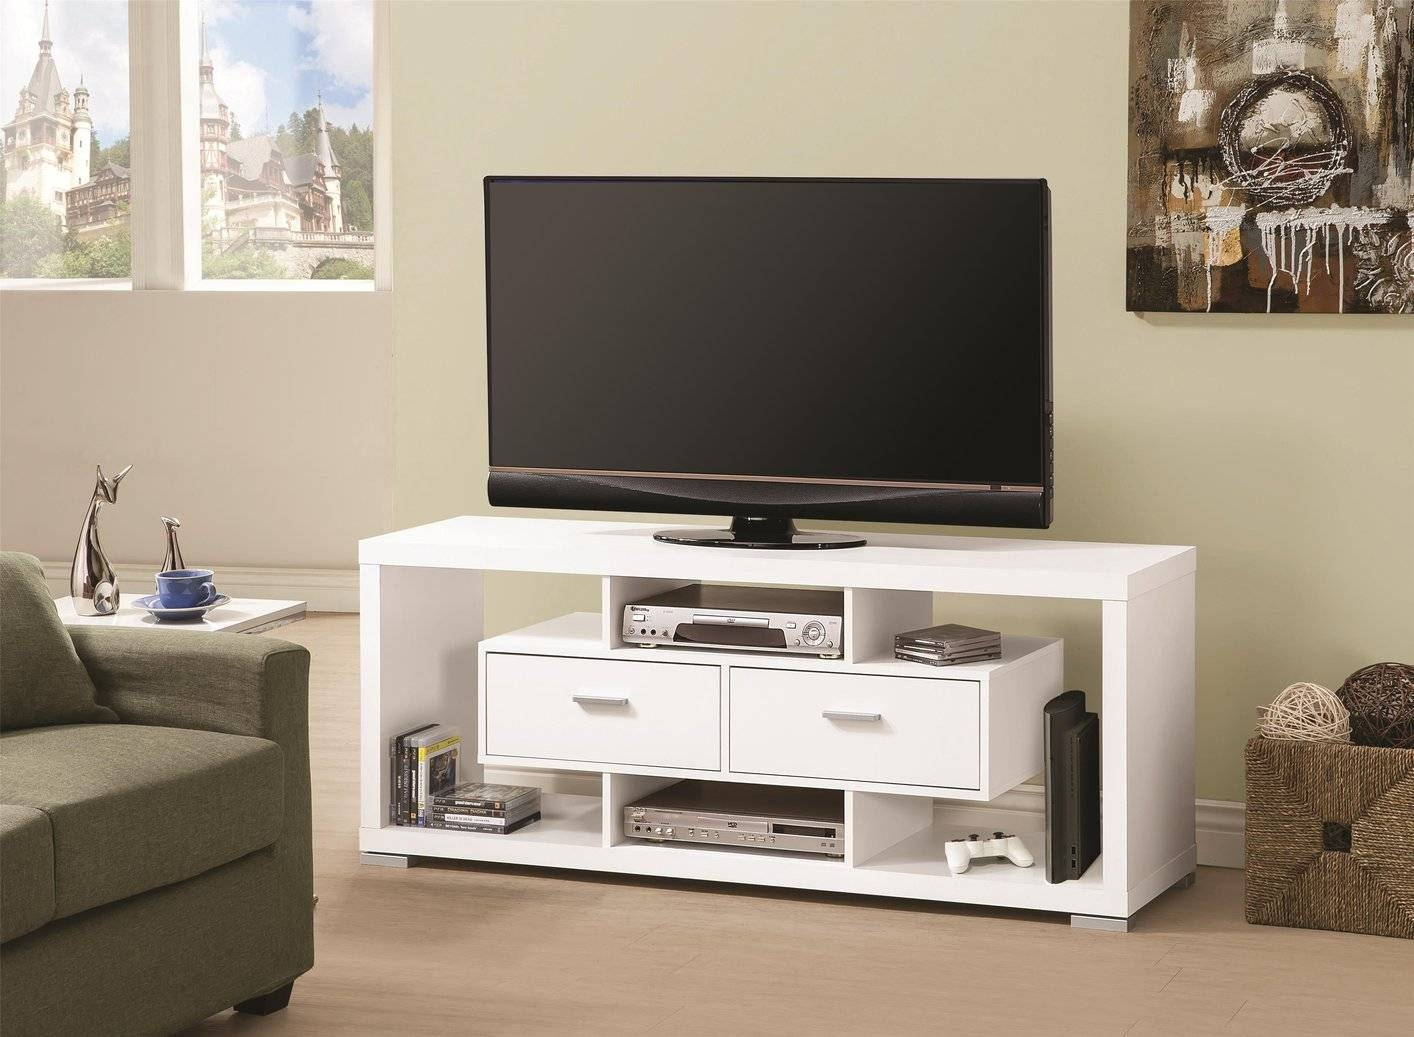 White Wood Tv Stand - Steal-A-Sofa Furniture Outlet Los Angeles Ca in Cheap Wood Tv Stands (Image 14 of 15)